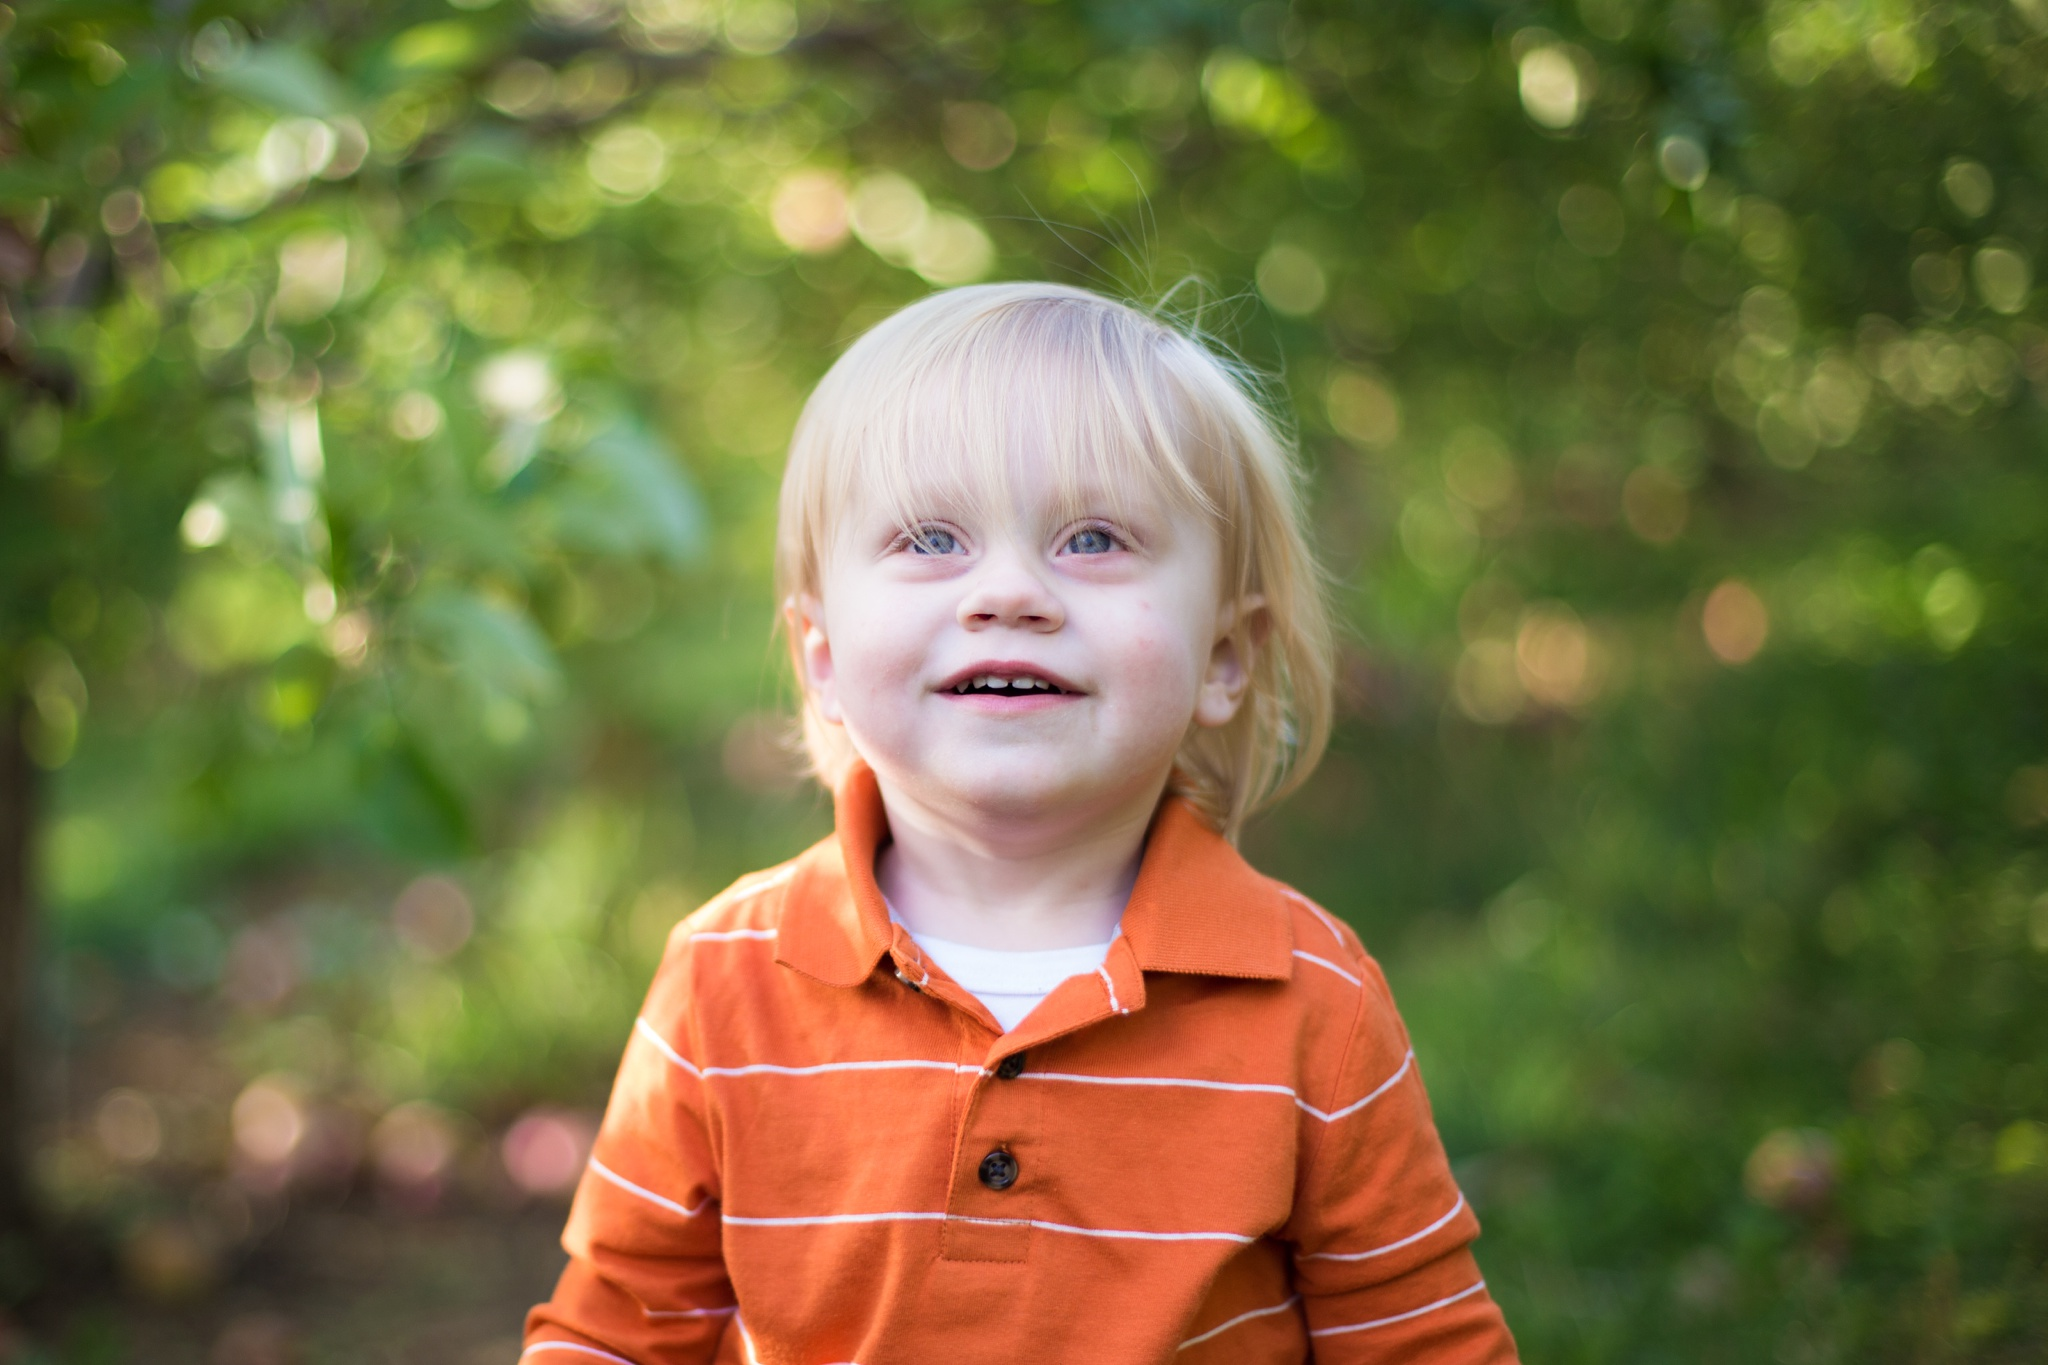 Family Photographers in Bangor Maine